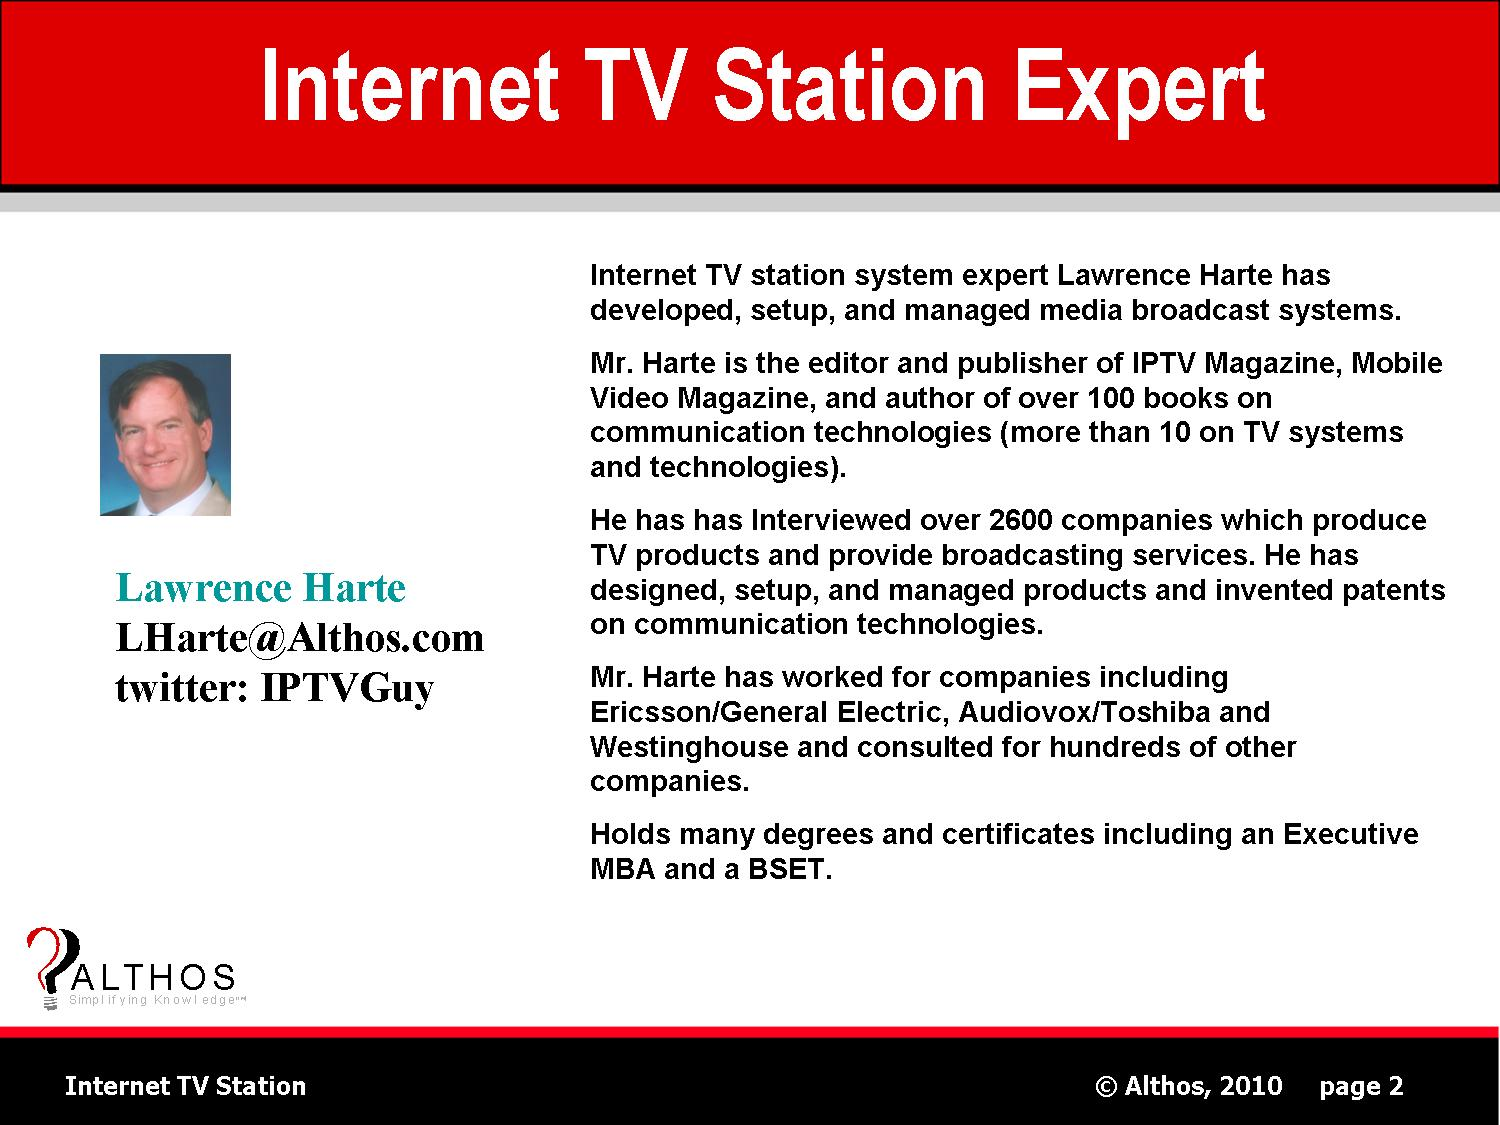 Internet TV Station Expert